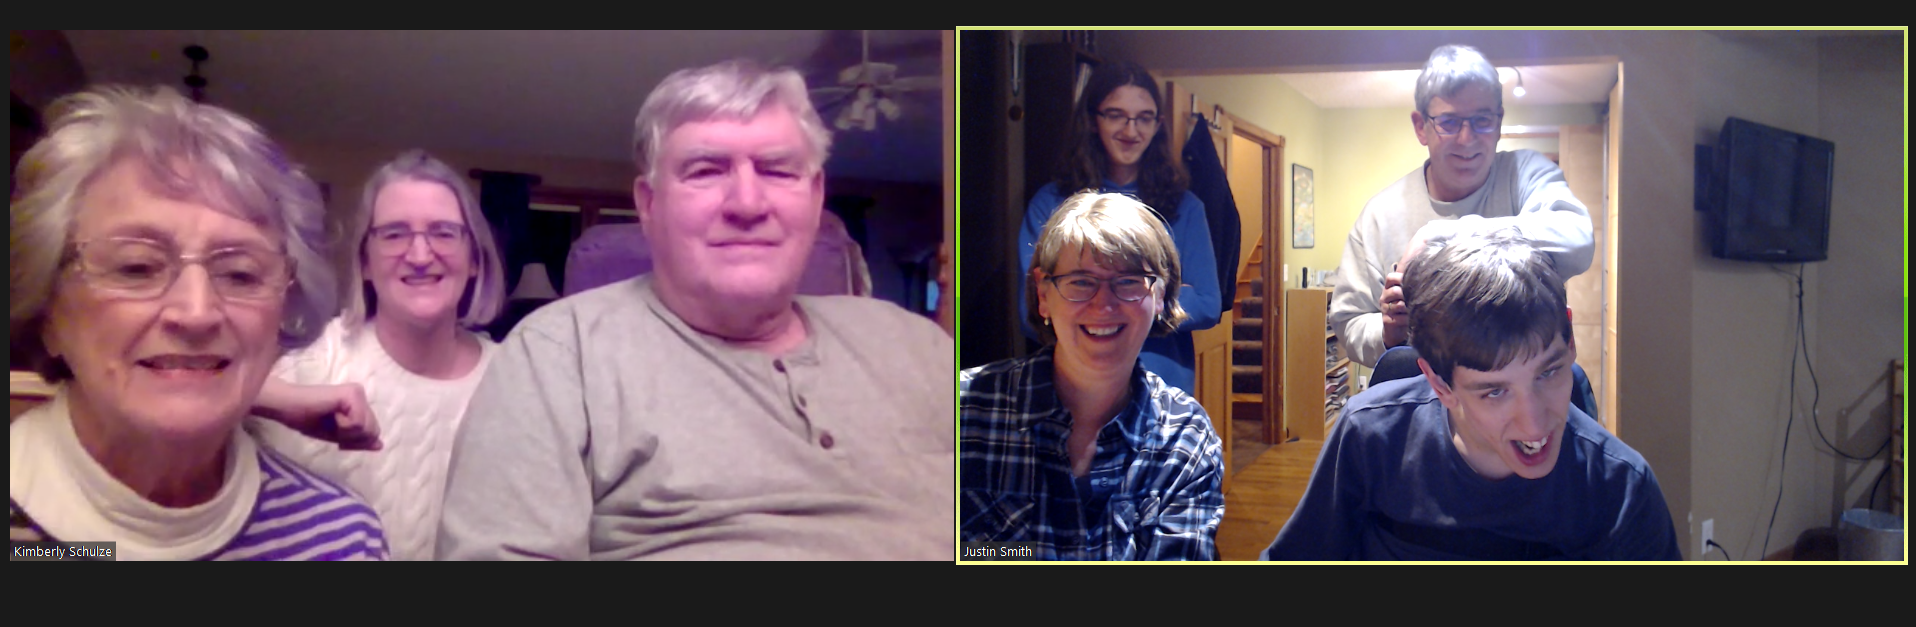 Zoom call screenshot with grandparents and aunt, and Justin with mom, dad, and brother